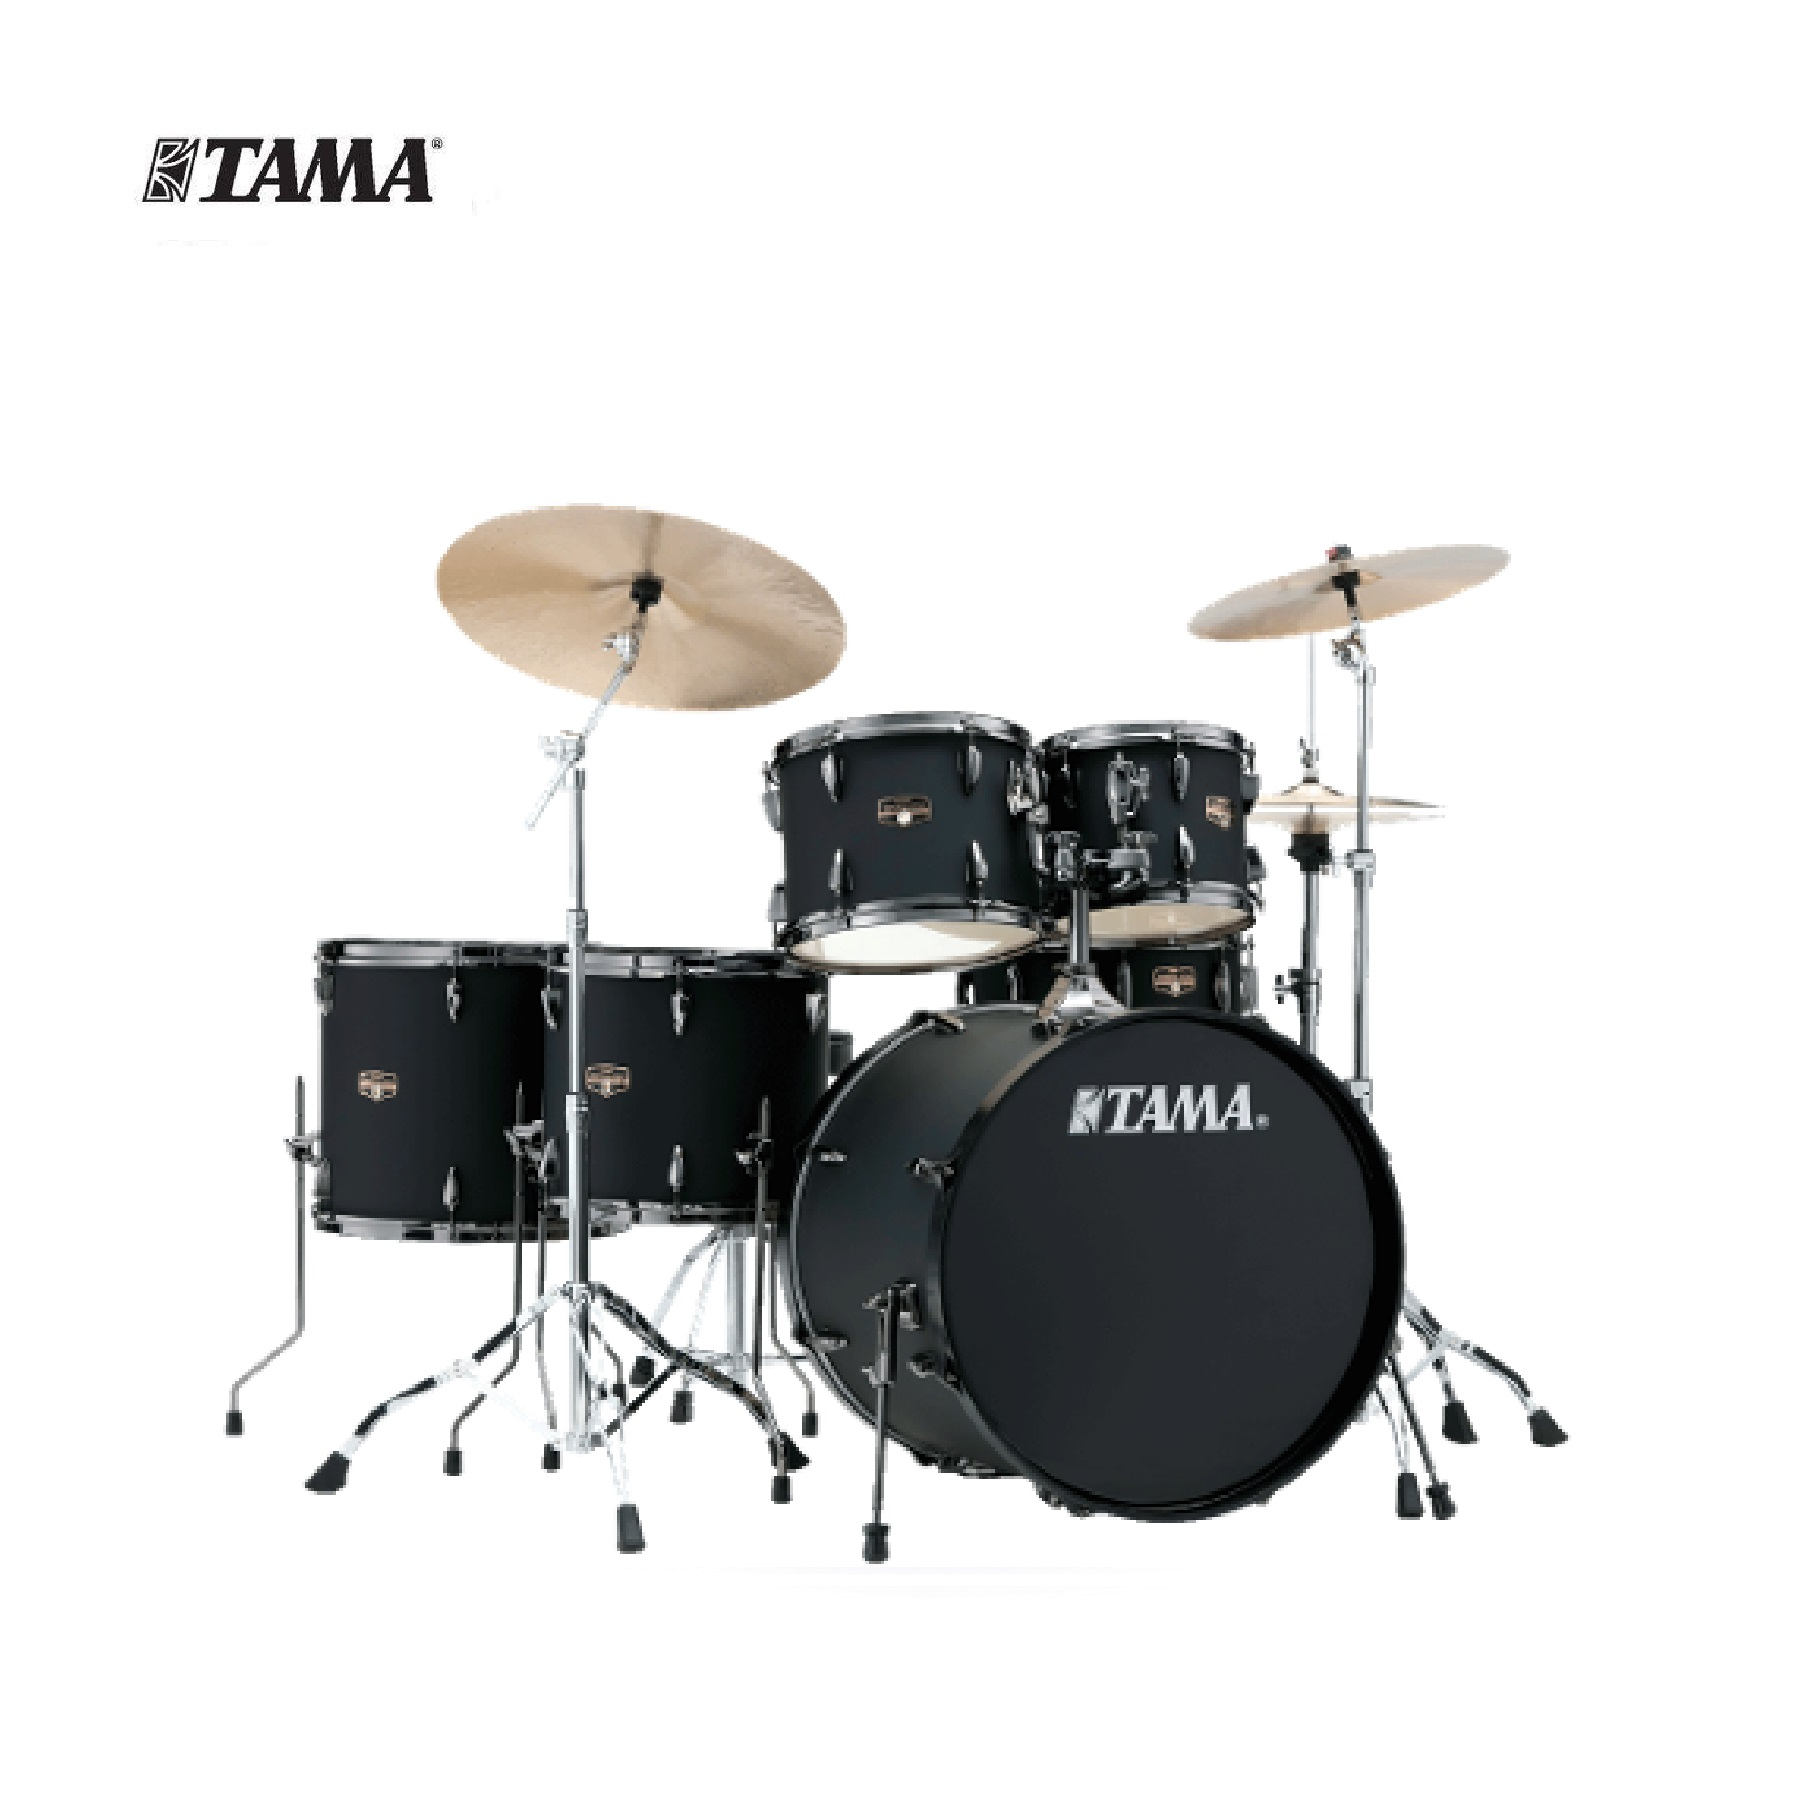 TAMA-Imperialstar Drum Kits